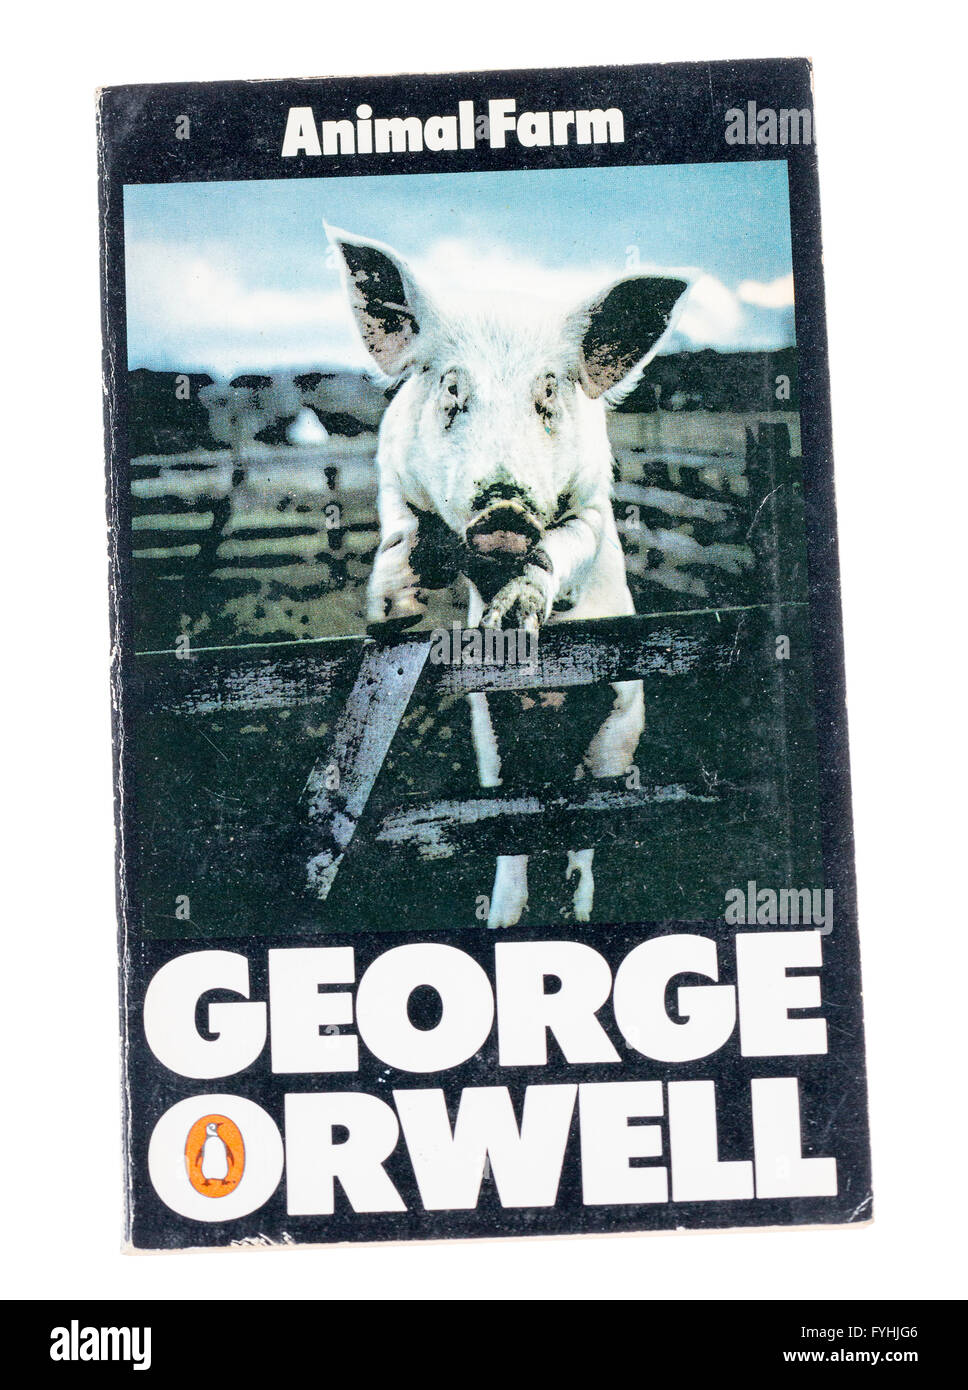 George Orwell Animal Farm paperback book published by Penguin - Stock Image